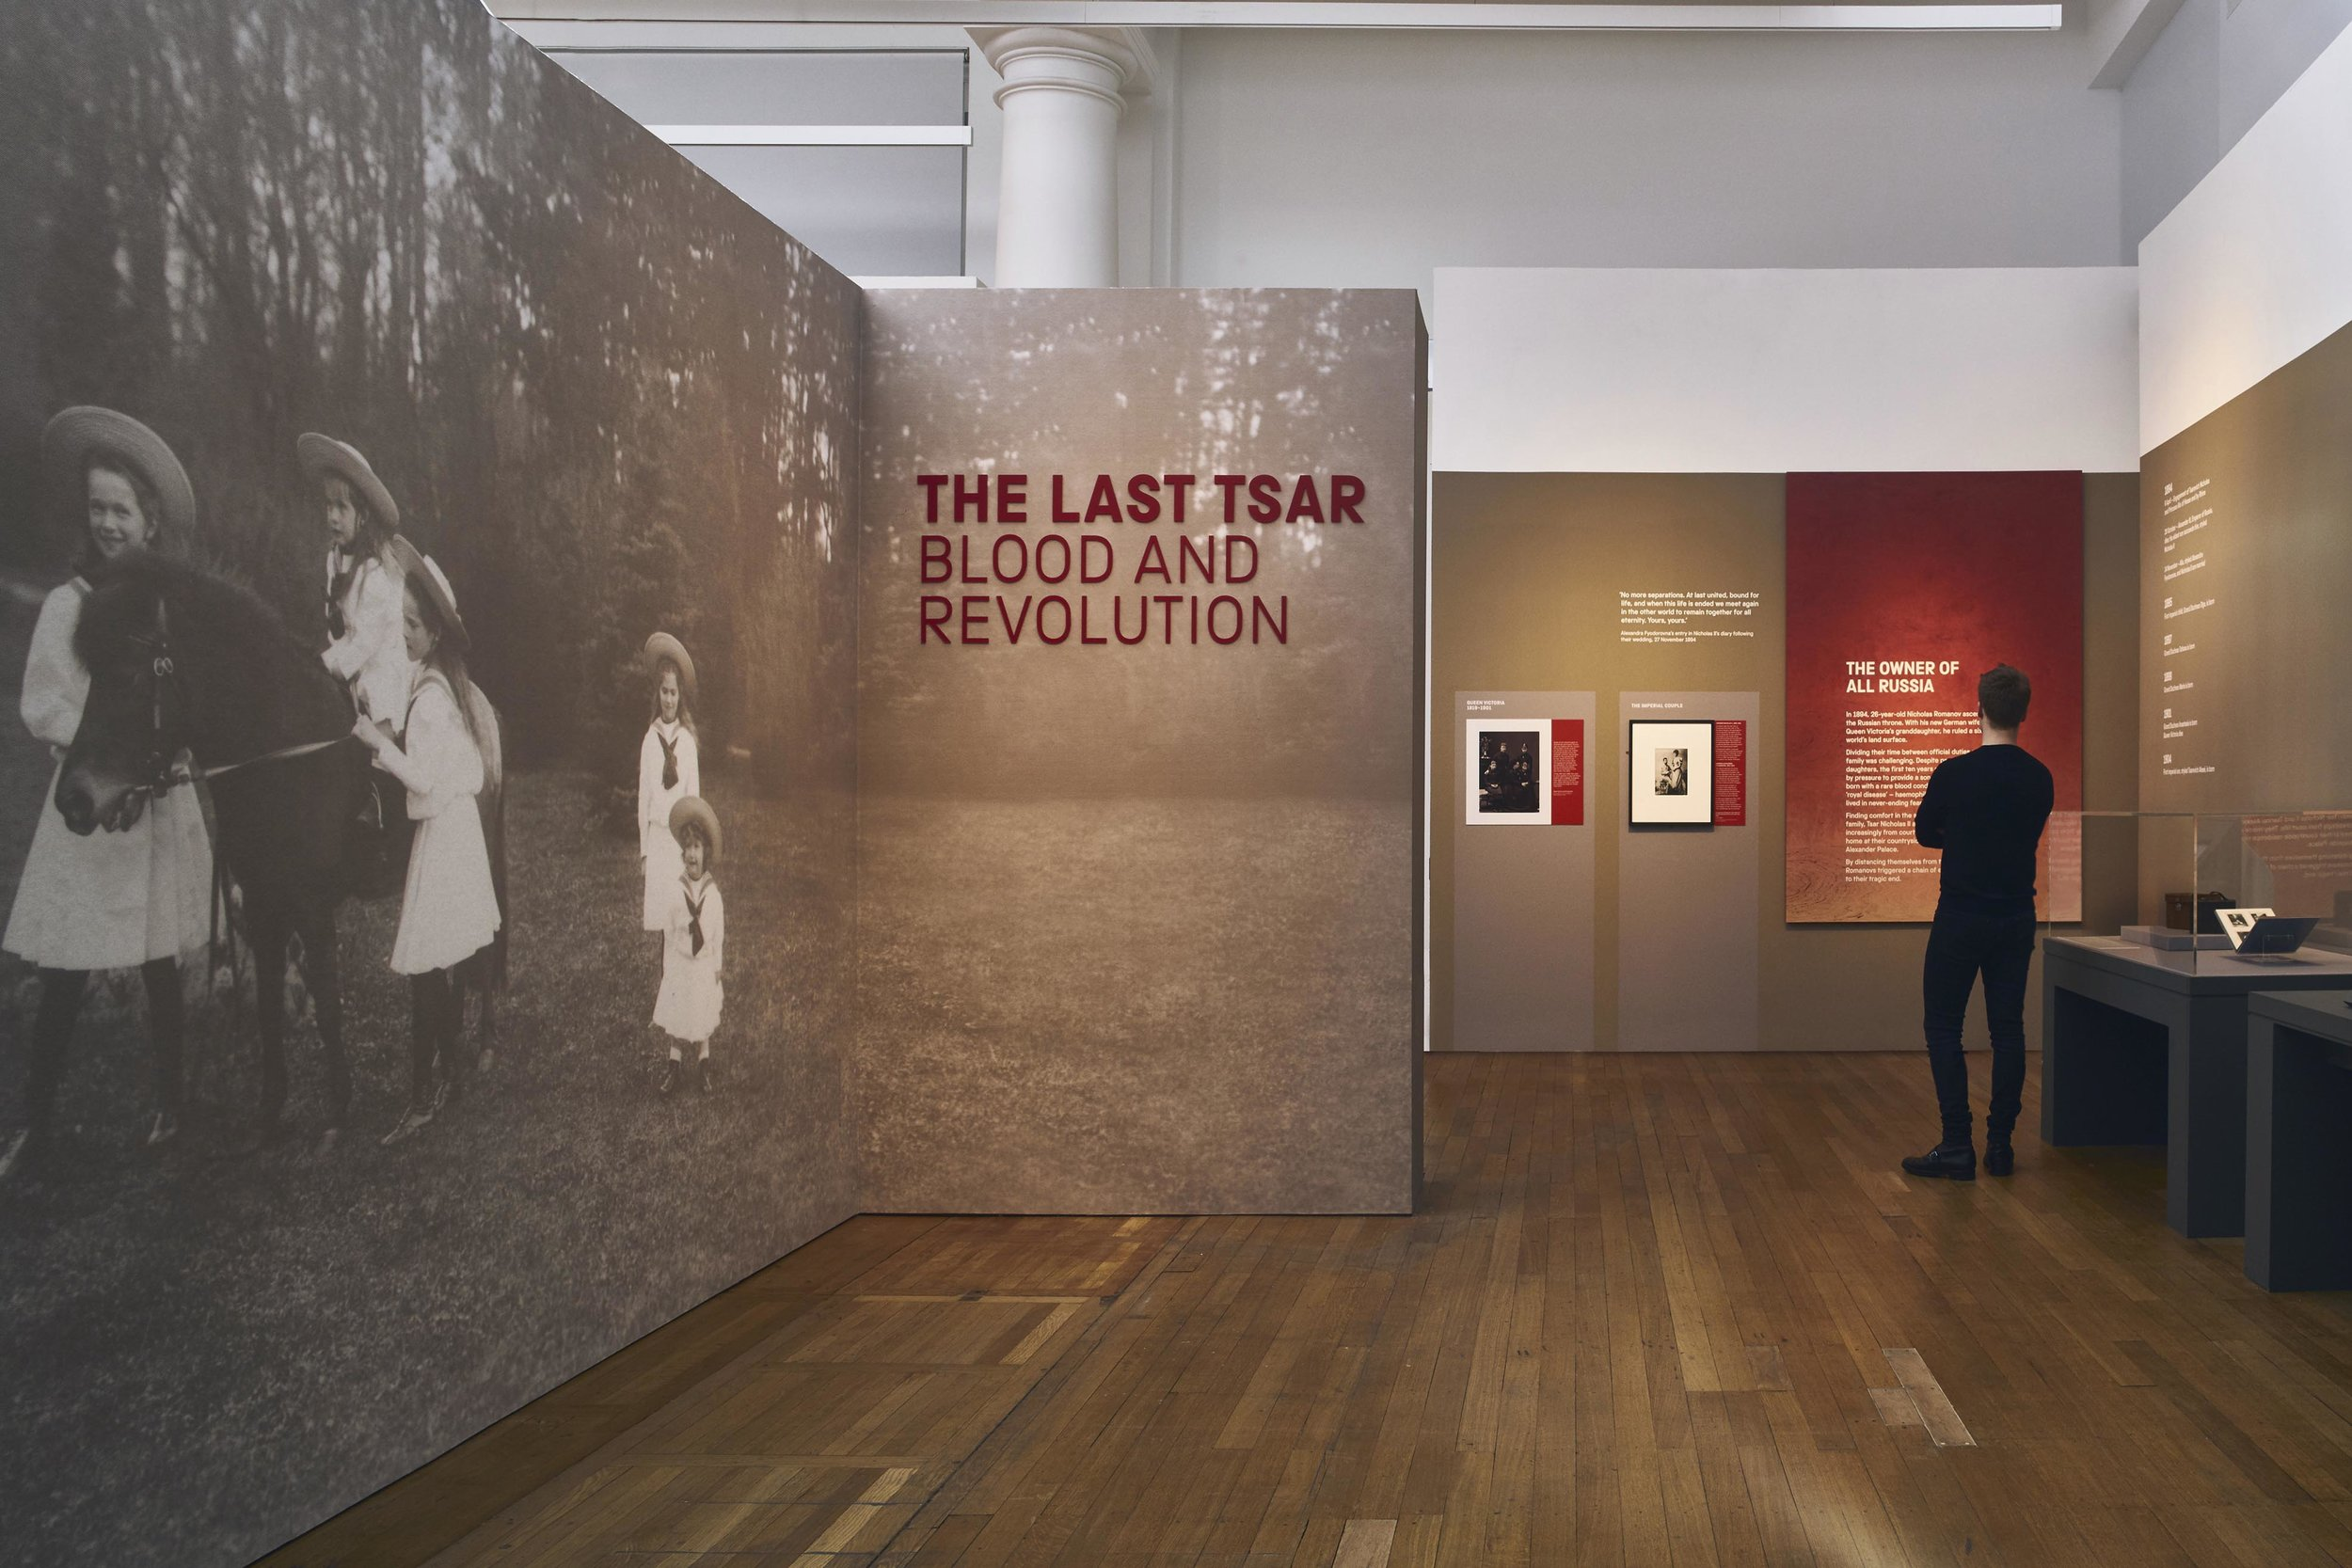 The Last Tsar: Blood and Revolution   Exhibition design, Science Museum London, 2018   Set against a turbulent backdrop of social upheaval and war between 1900 and 1918, this exhibition explores the influence of medicine on the imperial family during this period.  Using red and large scale imagery, the graphics create context and background for the collection of objects. The blood red gradient exposes the material of the panel, echoing the revelation of one of the greatest investigation of the century.